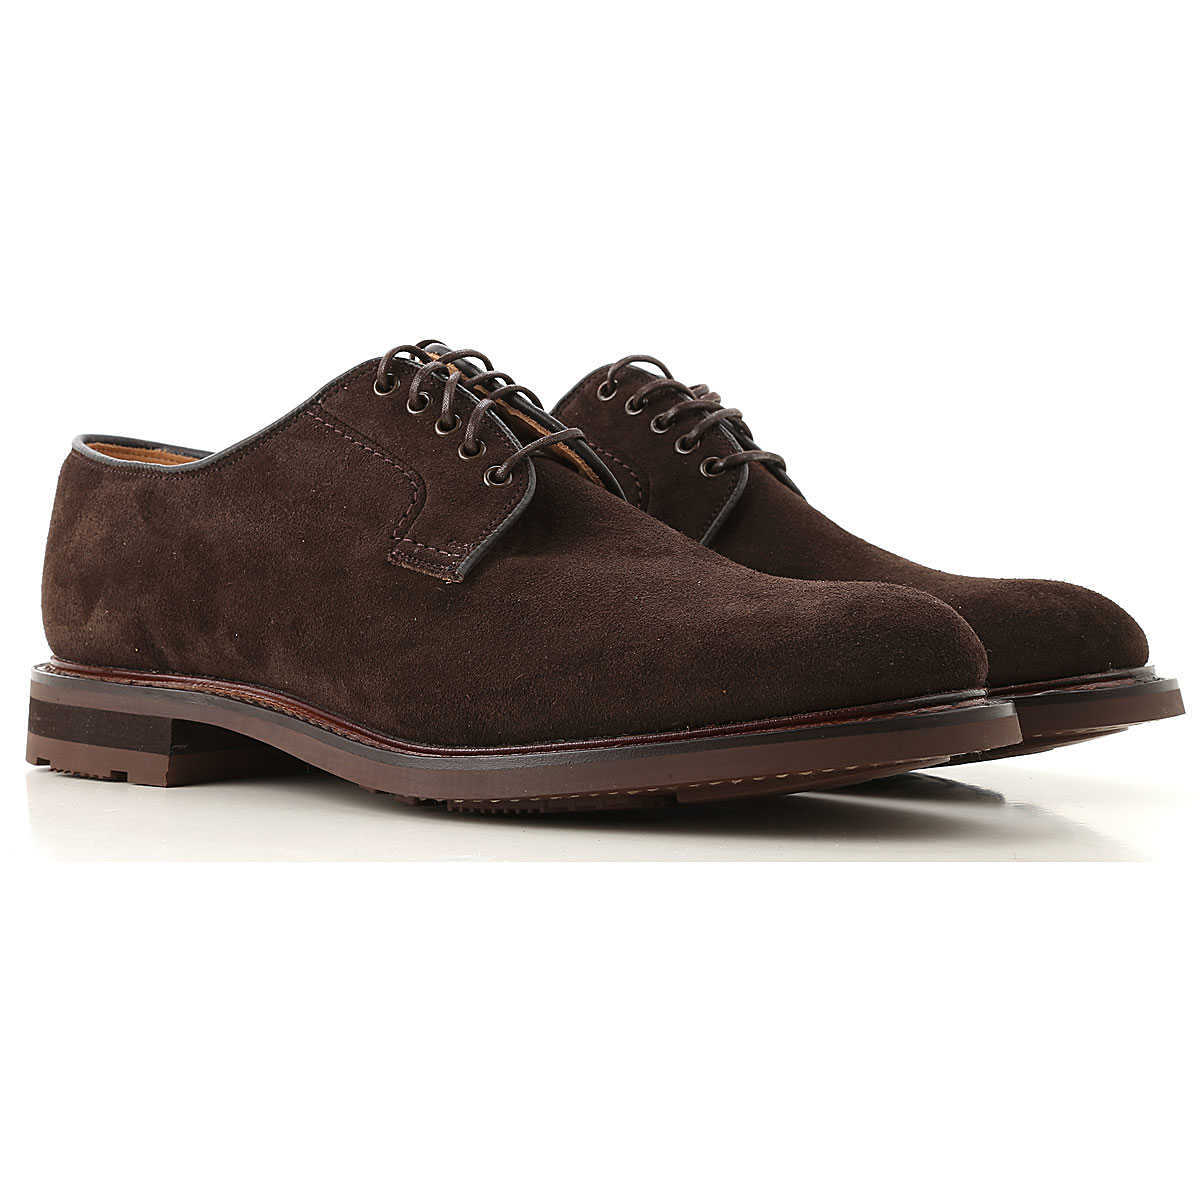 Church's Lace Up Shoes for Men Oxfords 10 6 9 Derbies and Brogues UK - GOOFASH